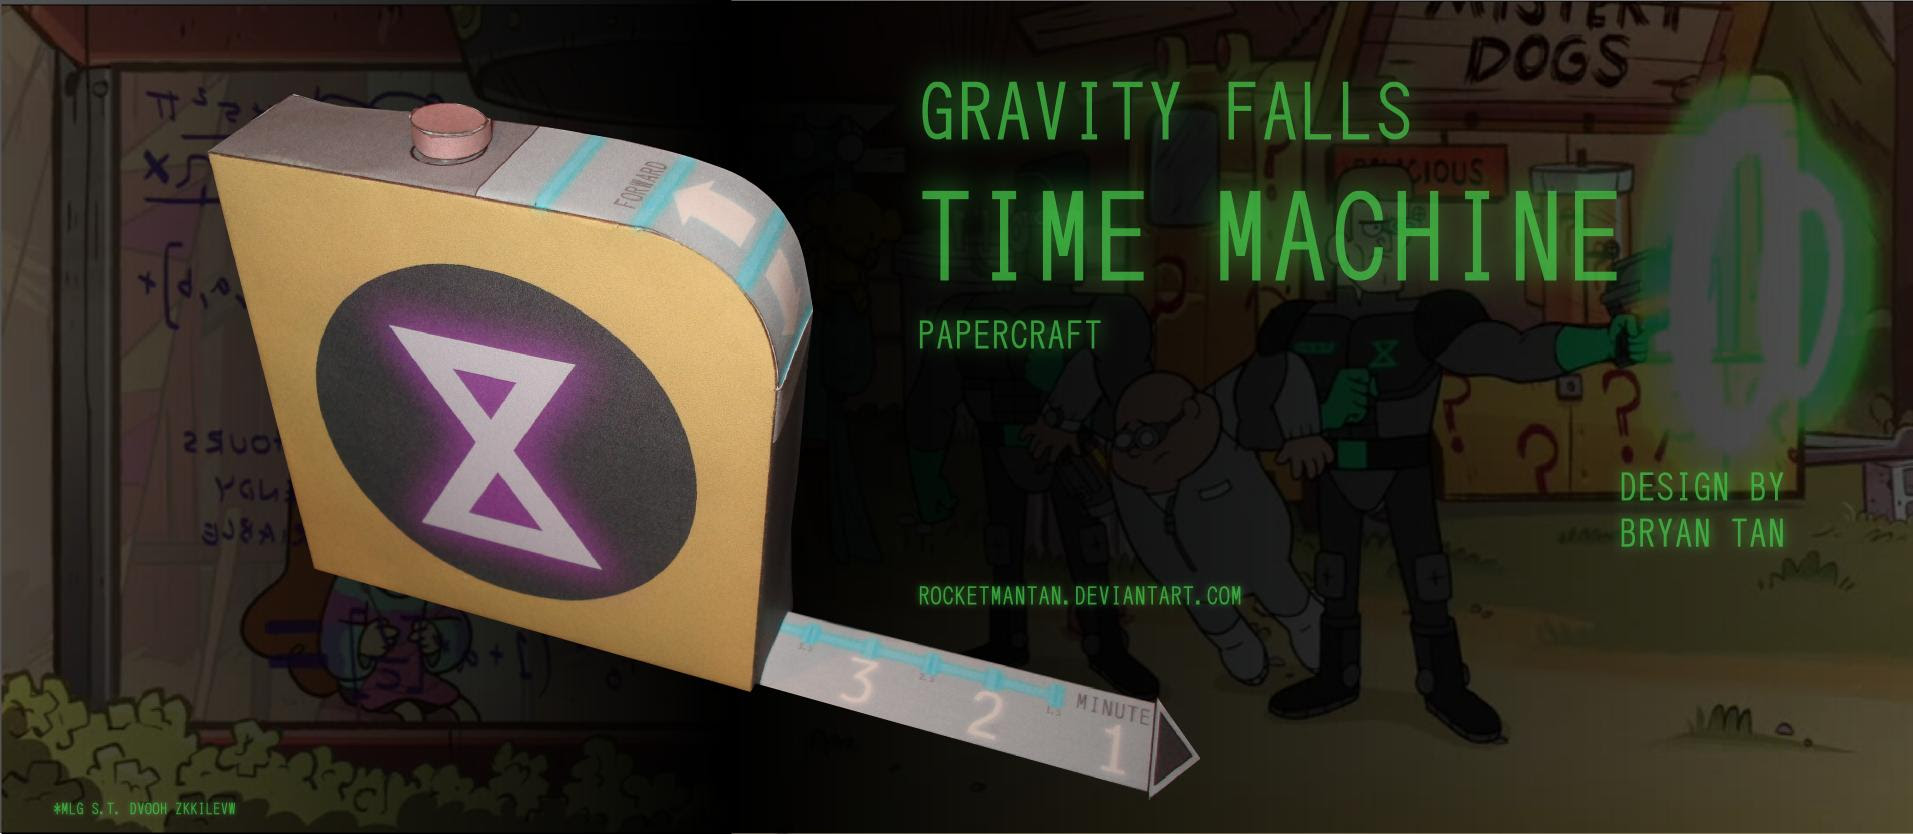 Gravity Falls Papercraft Time Machine